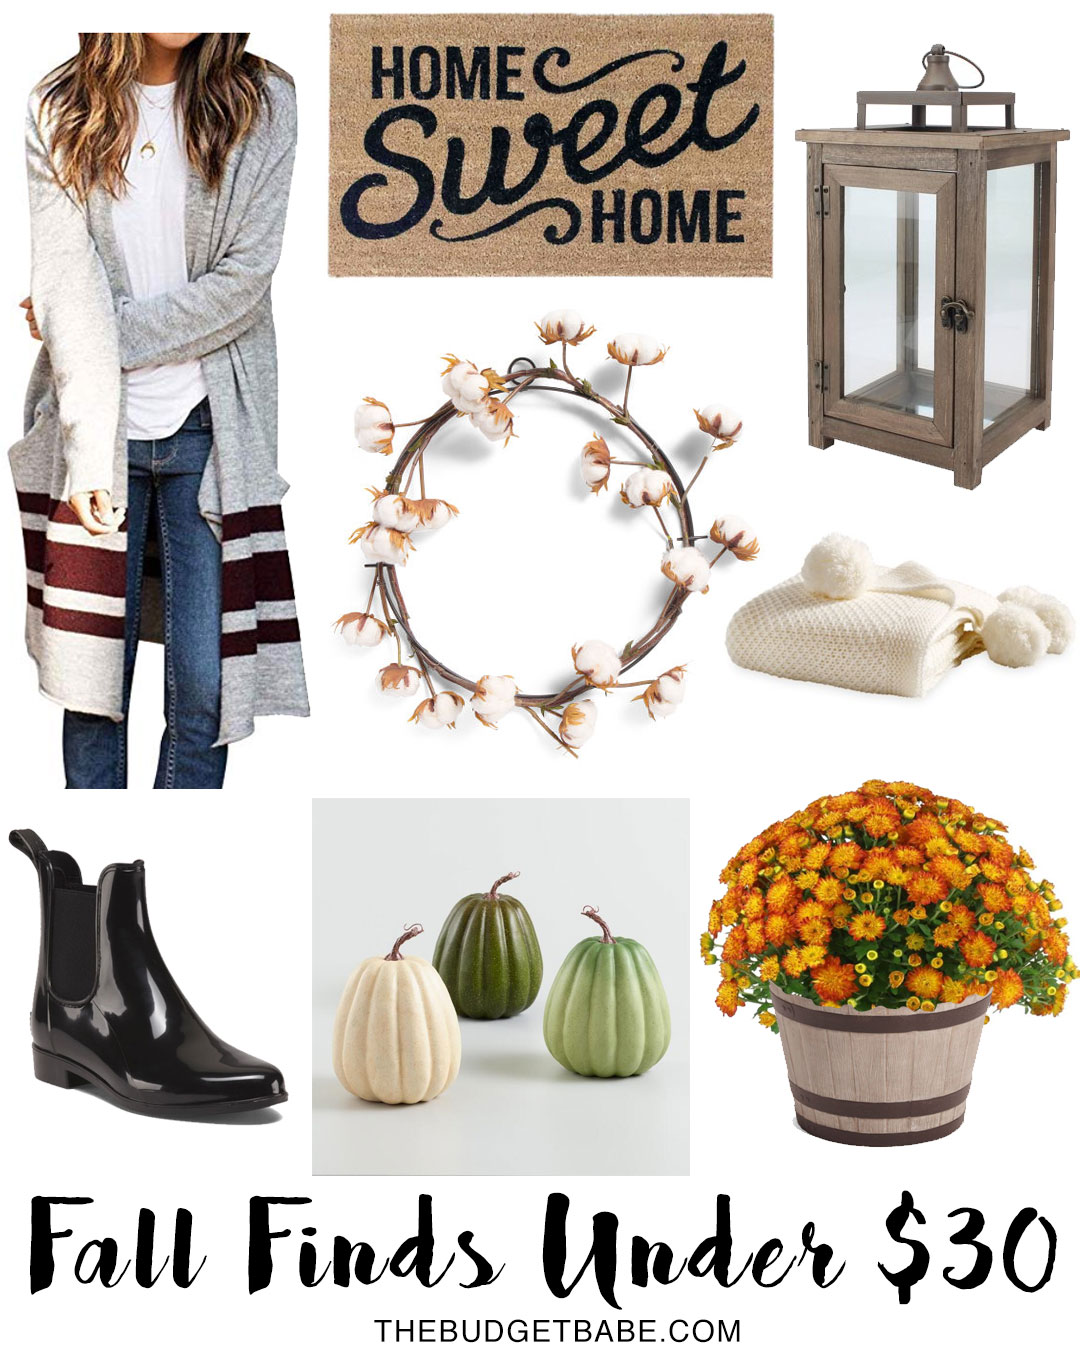 Fall Finds Under $30 - pom pom throw is just $16!